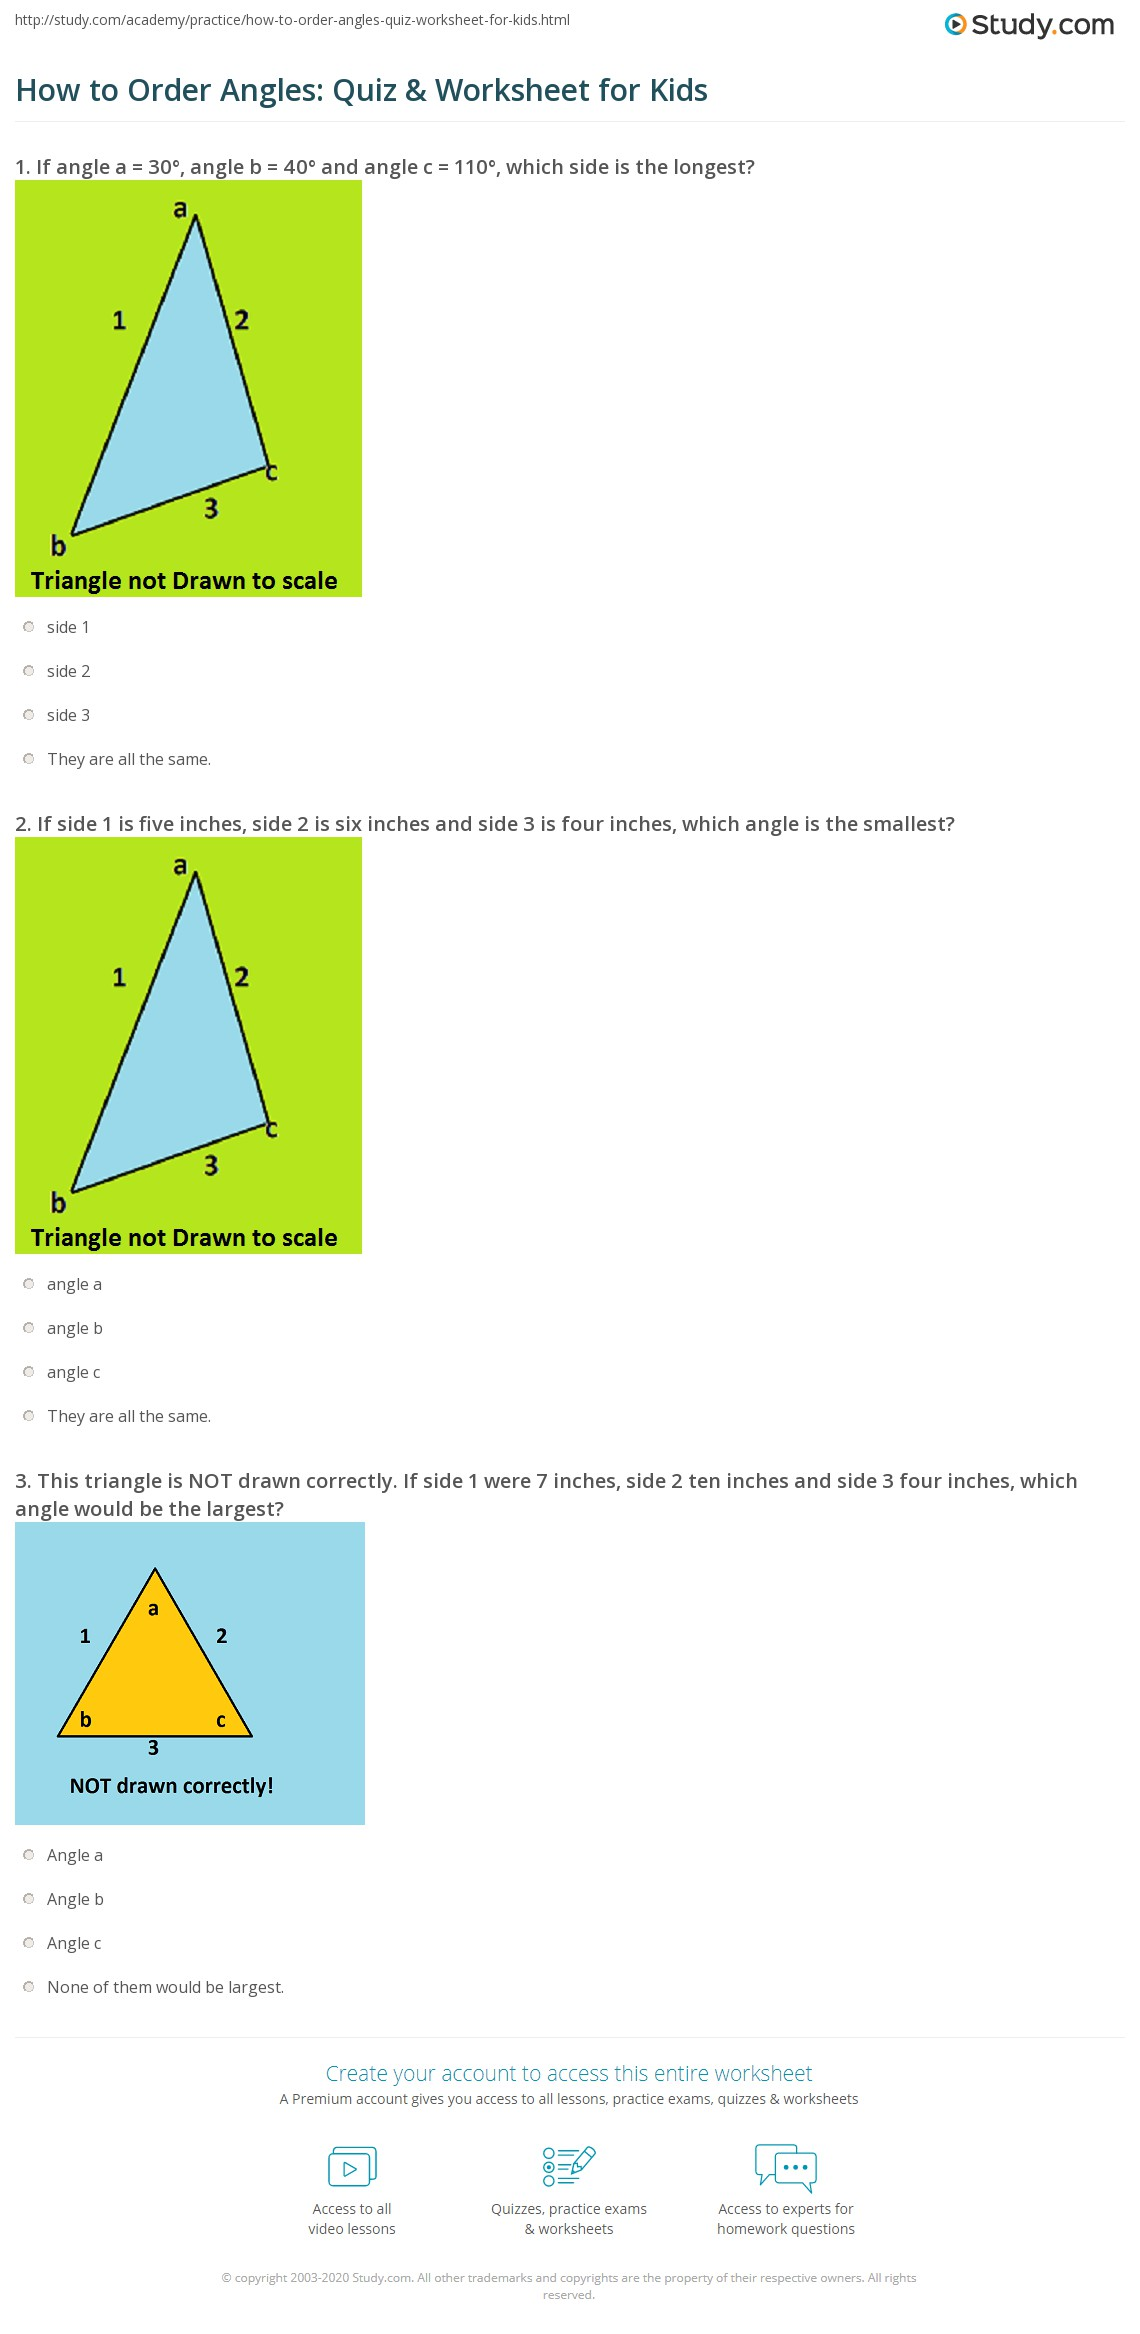 How To Order Angles Quiz Amp Worksheet For Kids